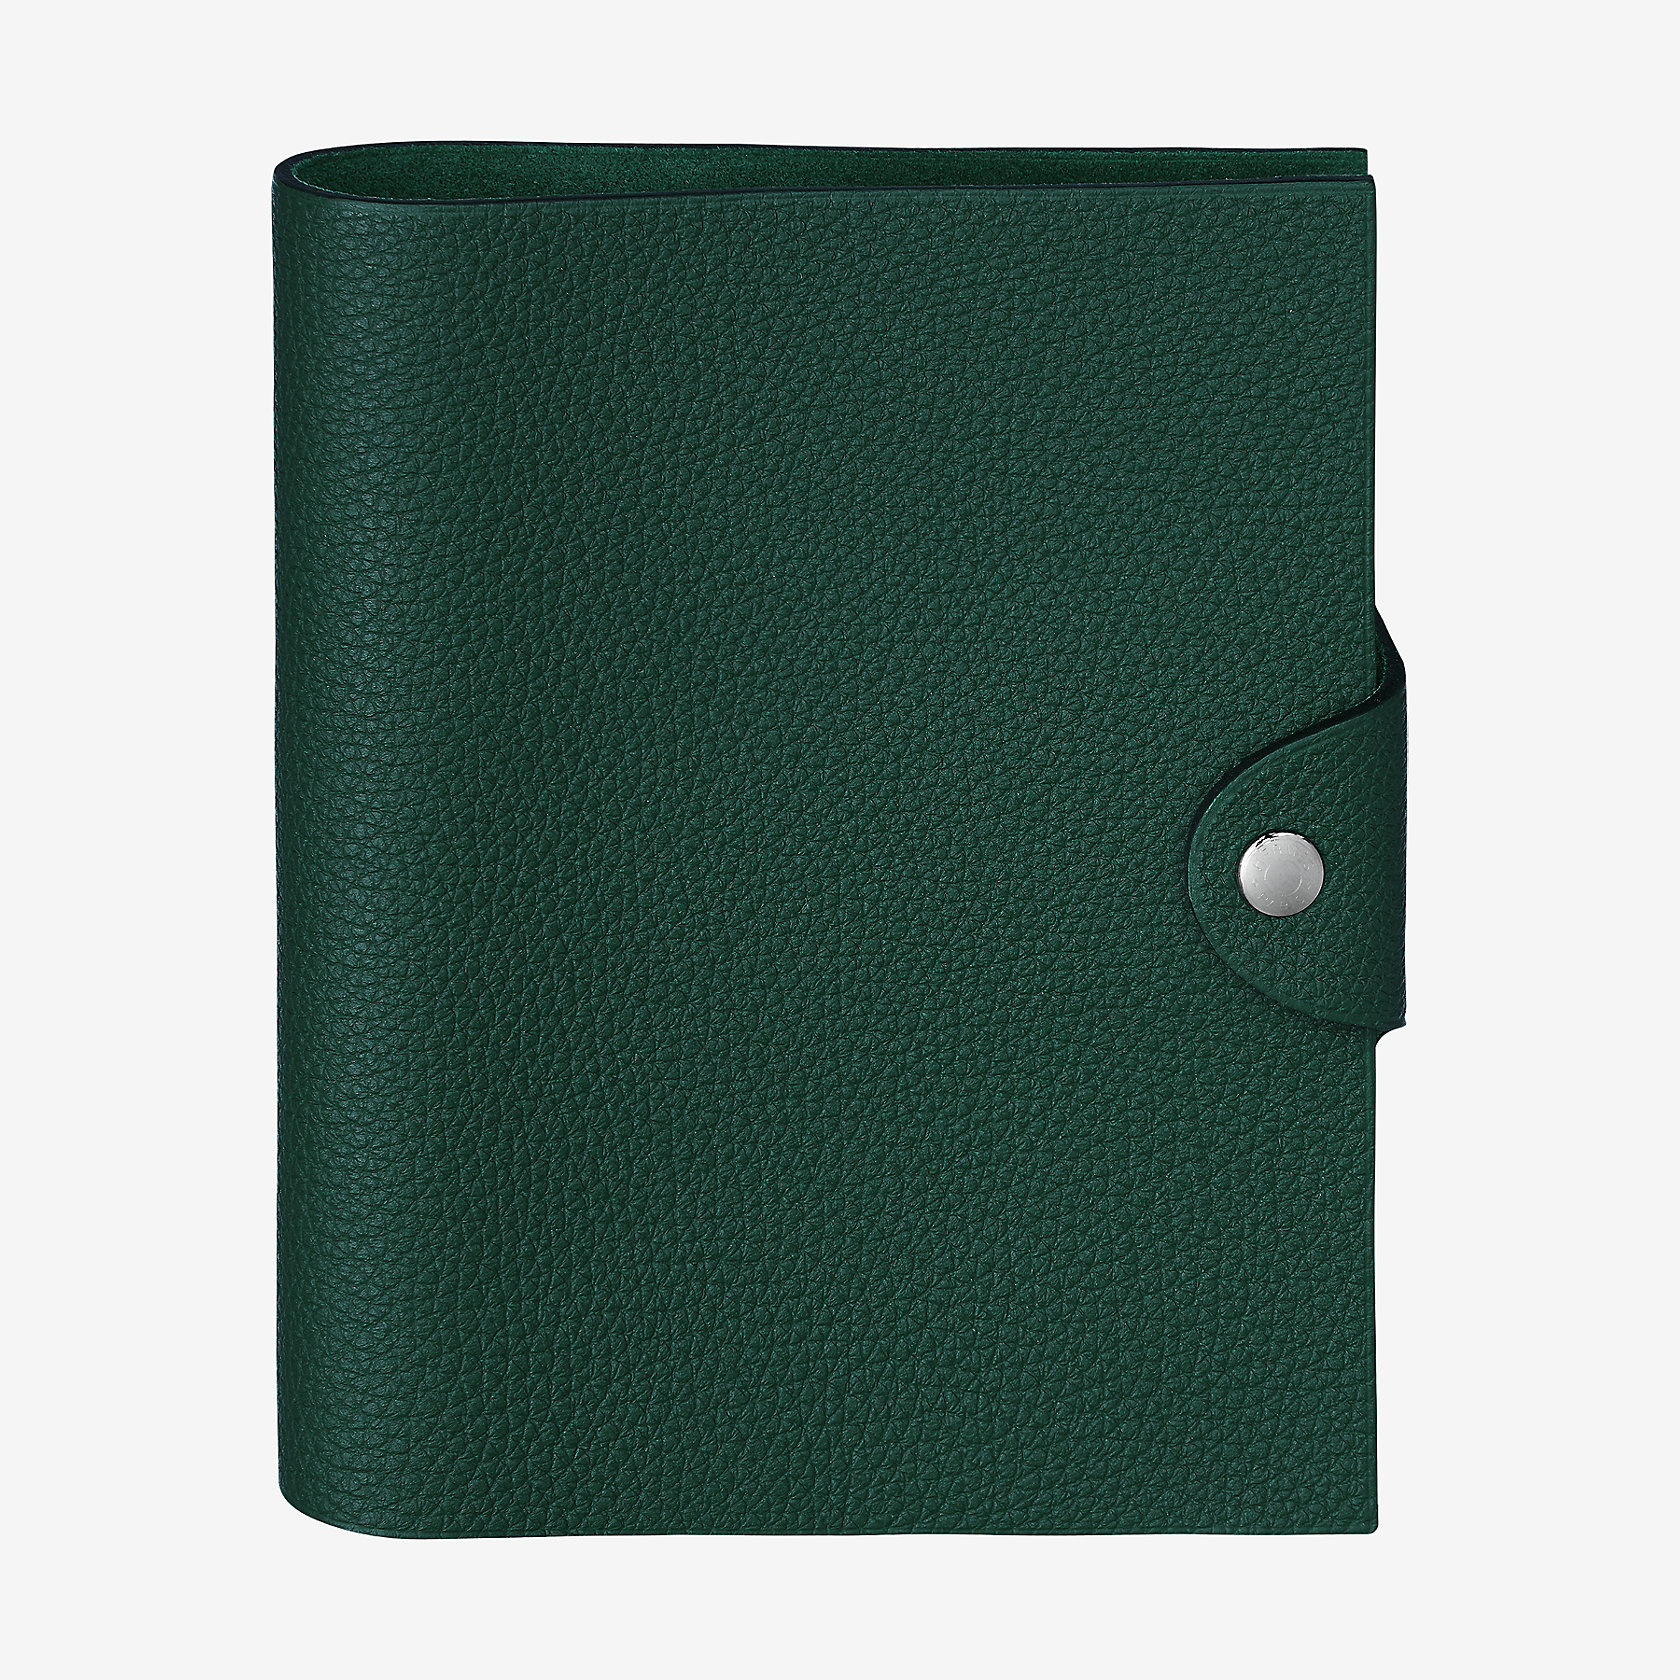 Ulysse notebook cover  66b04a4beda55